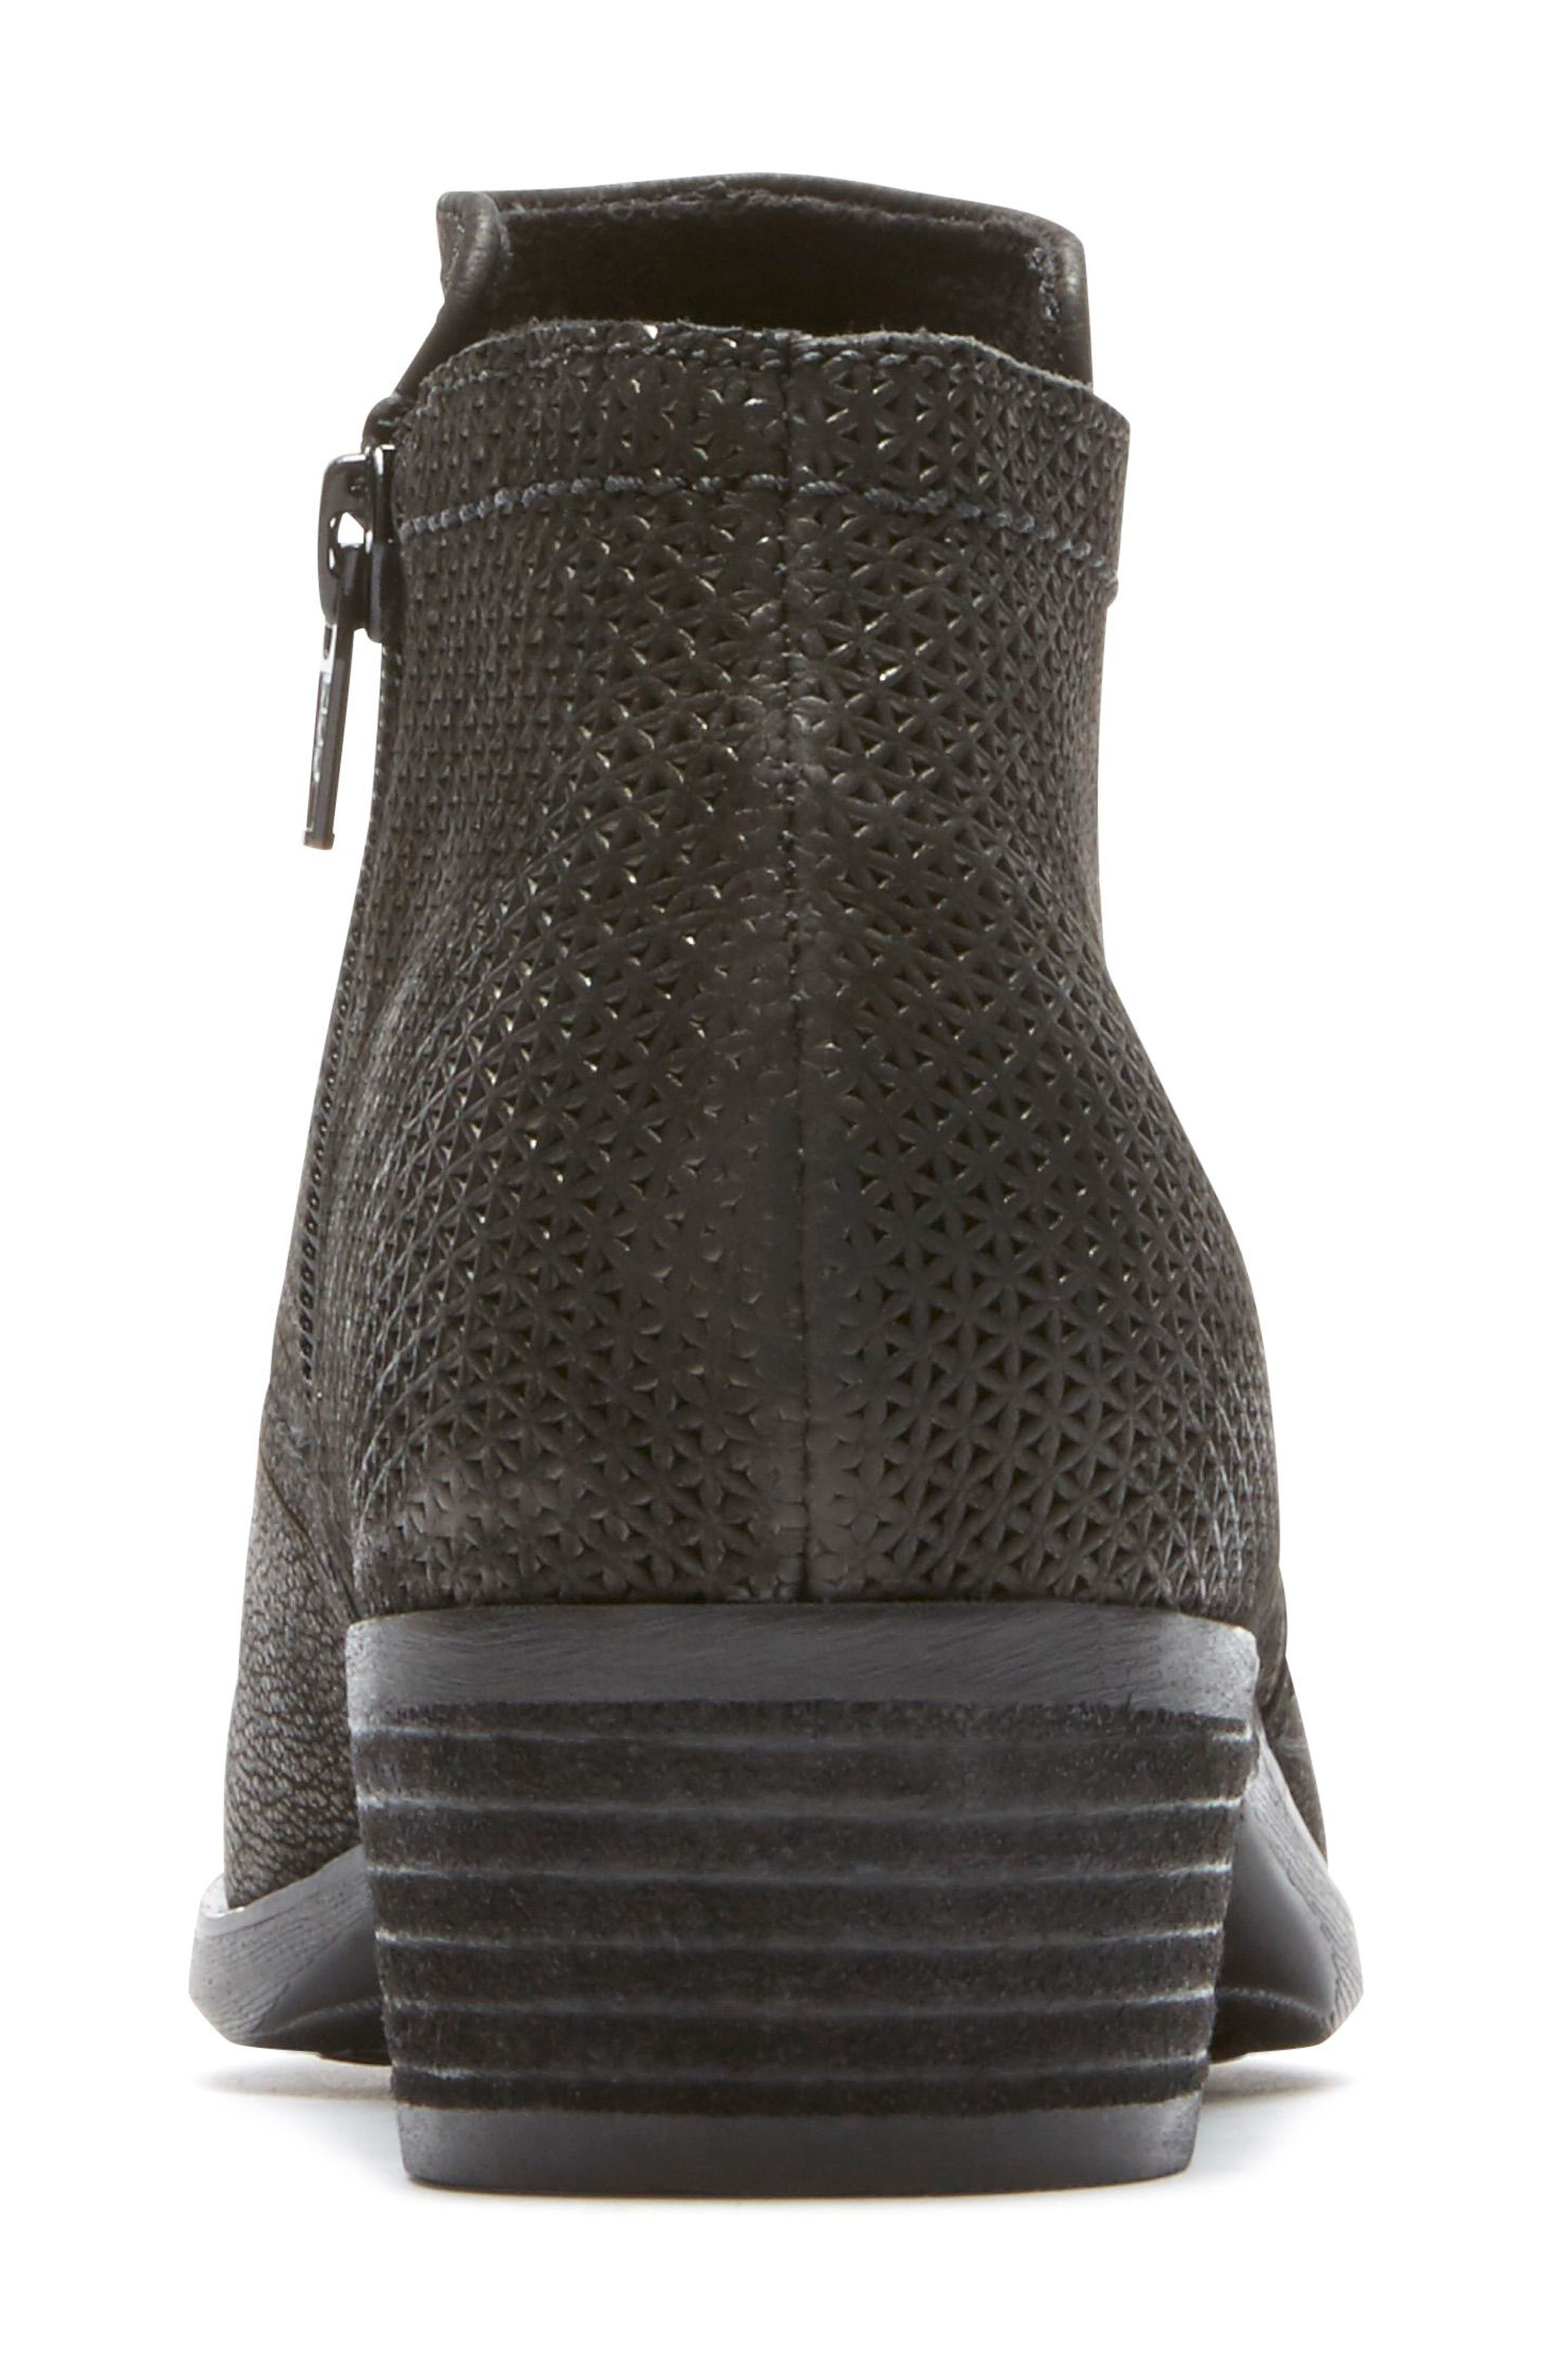 ROCKPORT,                             Vanna Strappy Bootie,                             Alternate thumbnail 8, color,                             BLACK NUBUCK